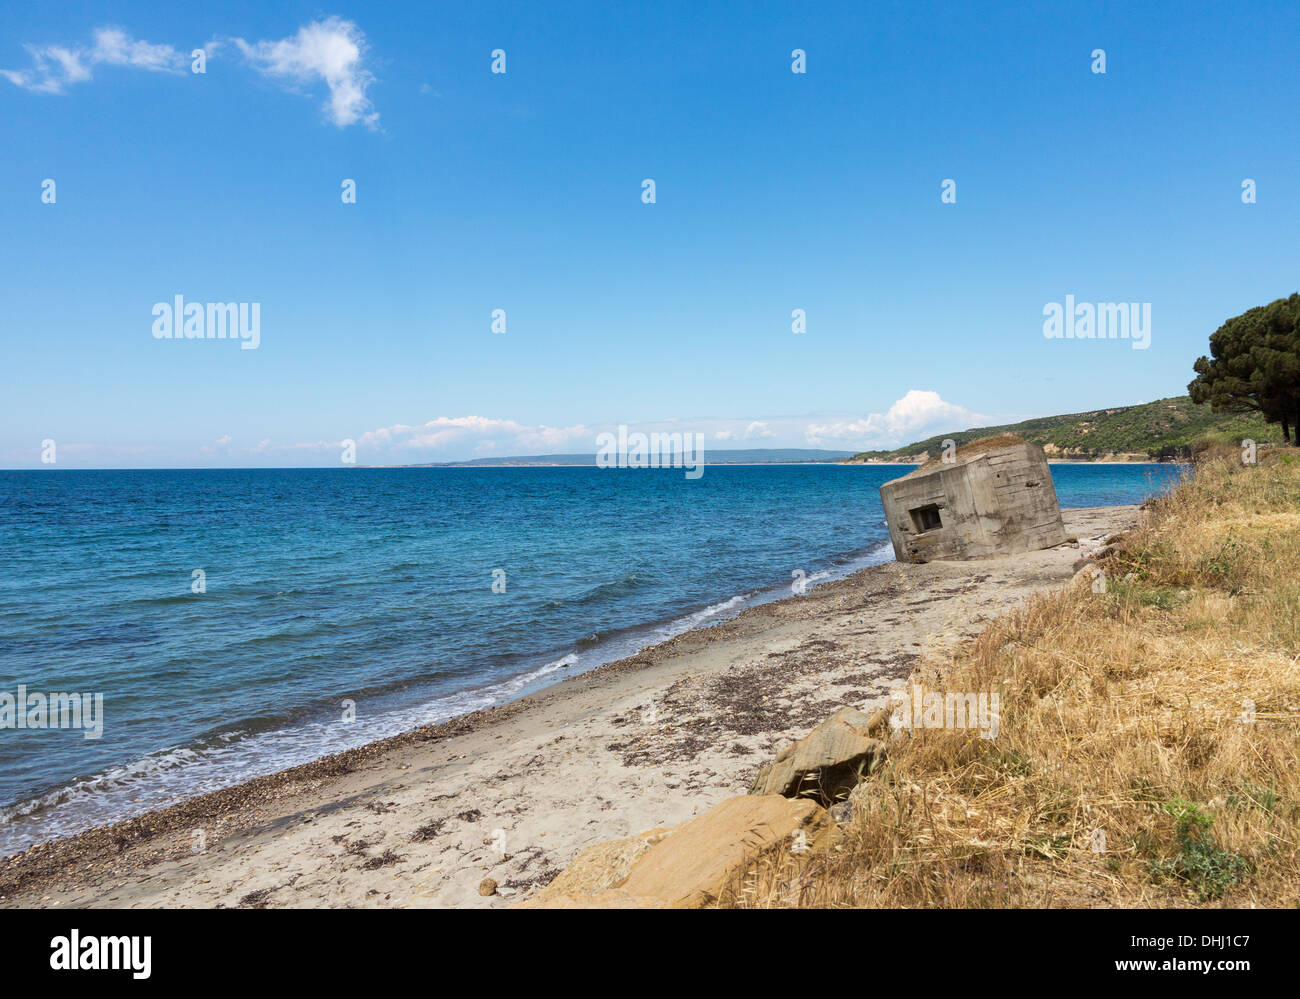 Old concrete WW1 bunker or pillbox on the beach at Anzac Cove in Gallipoli, East Thrace, Turkey - Stock Image